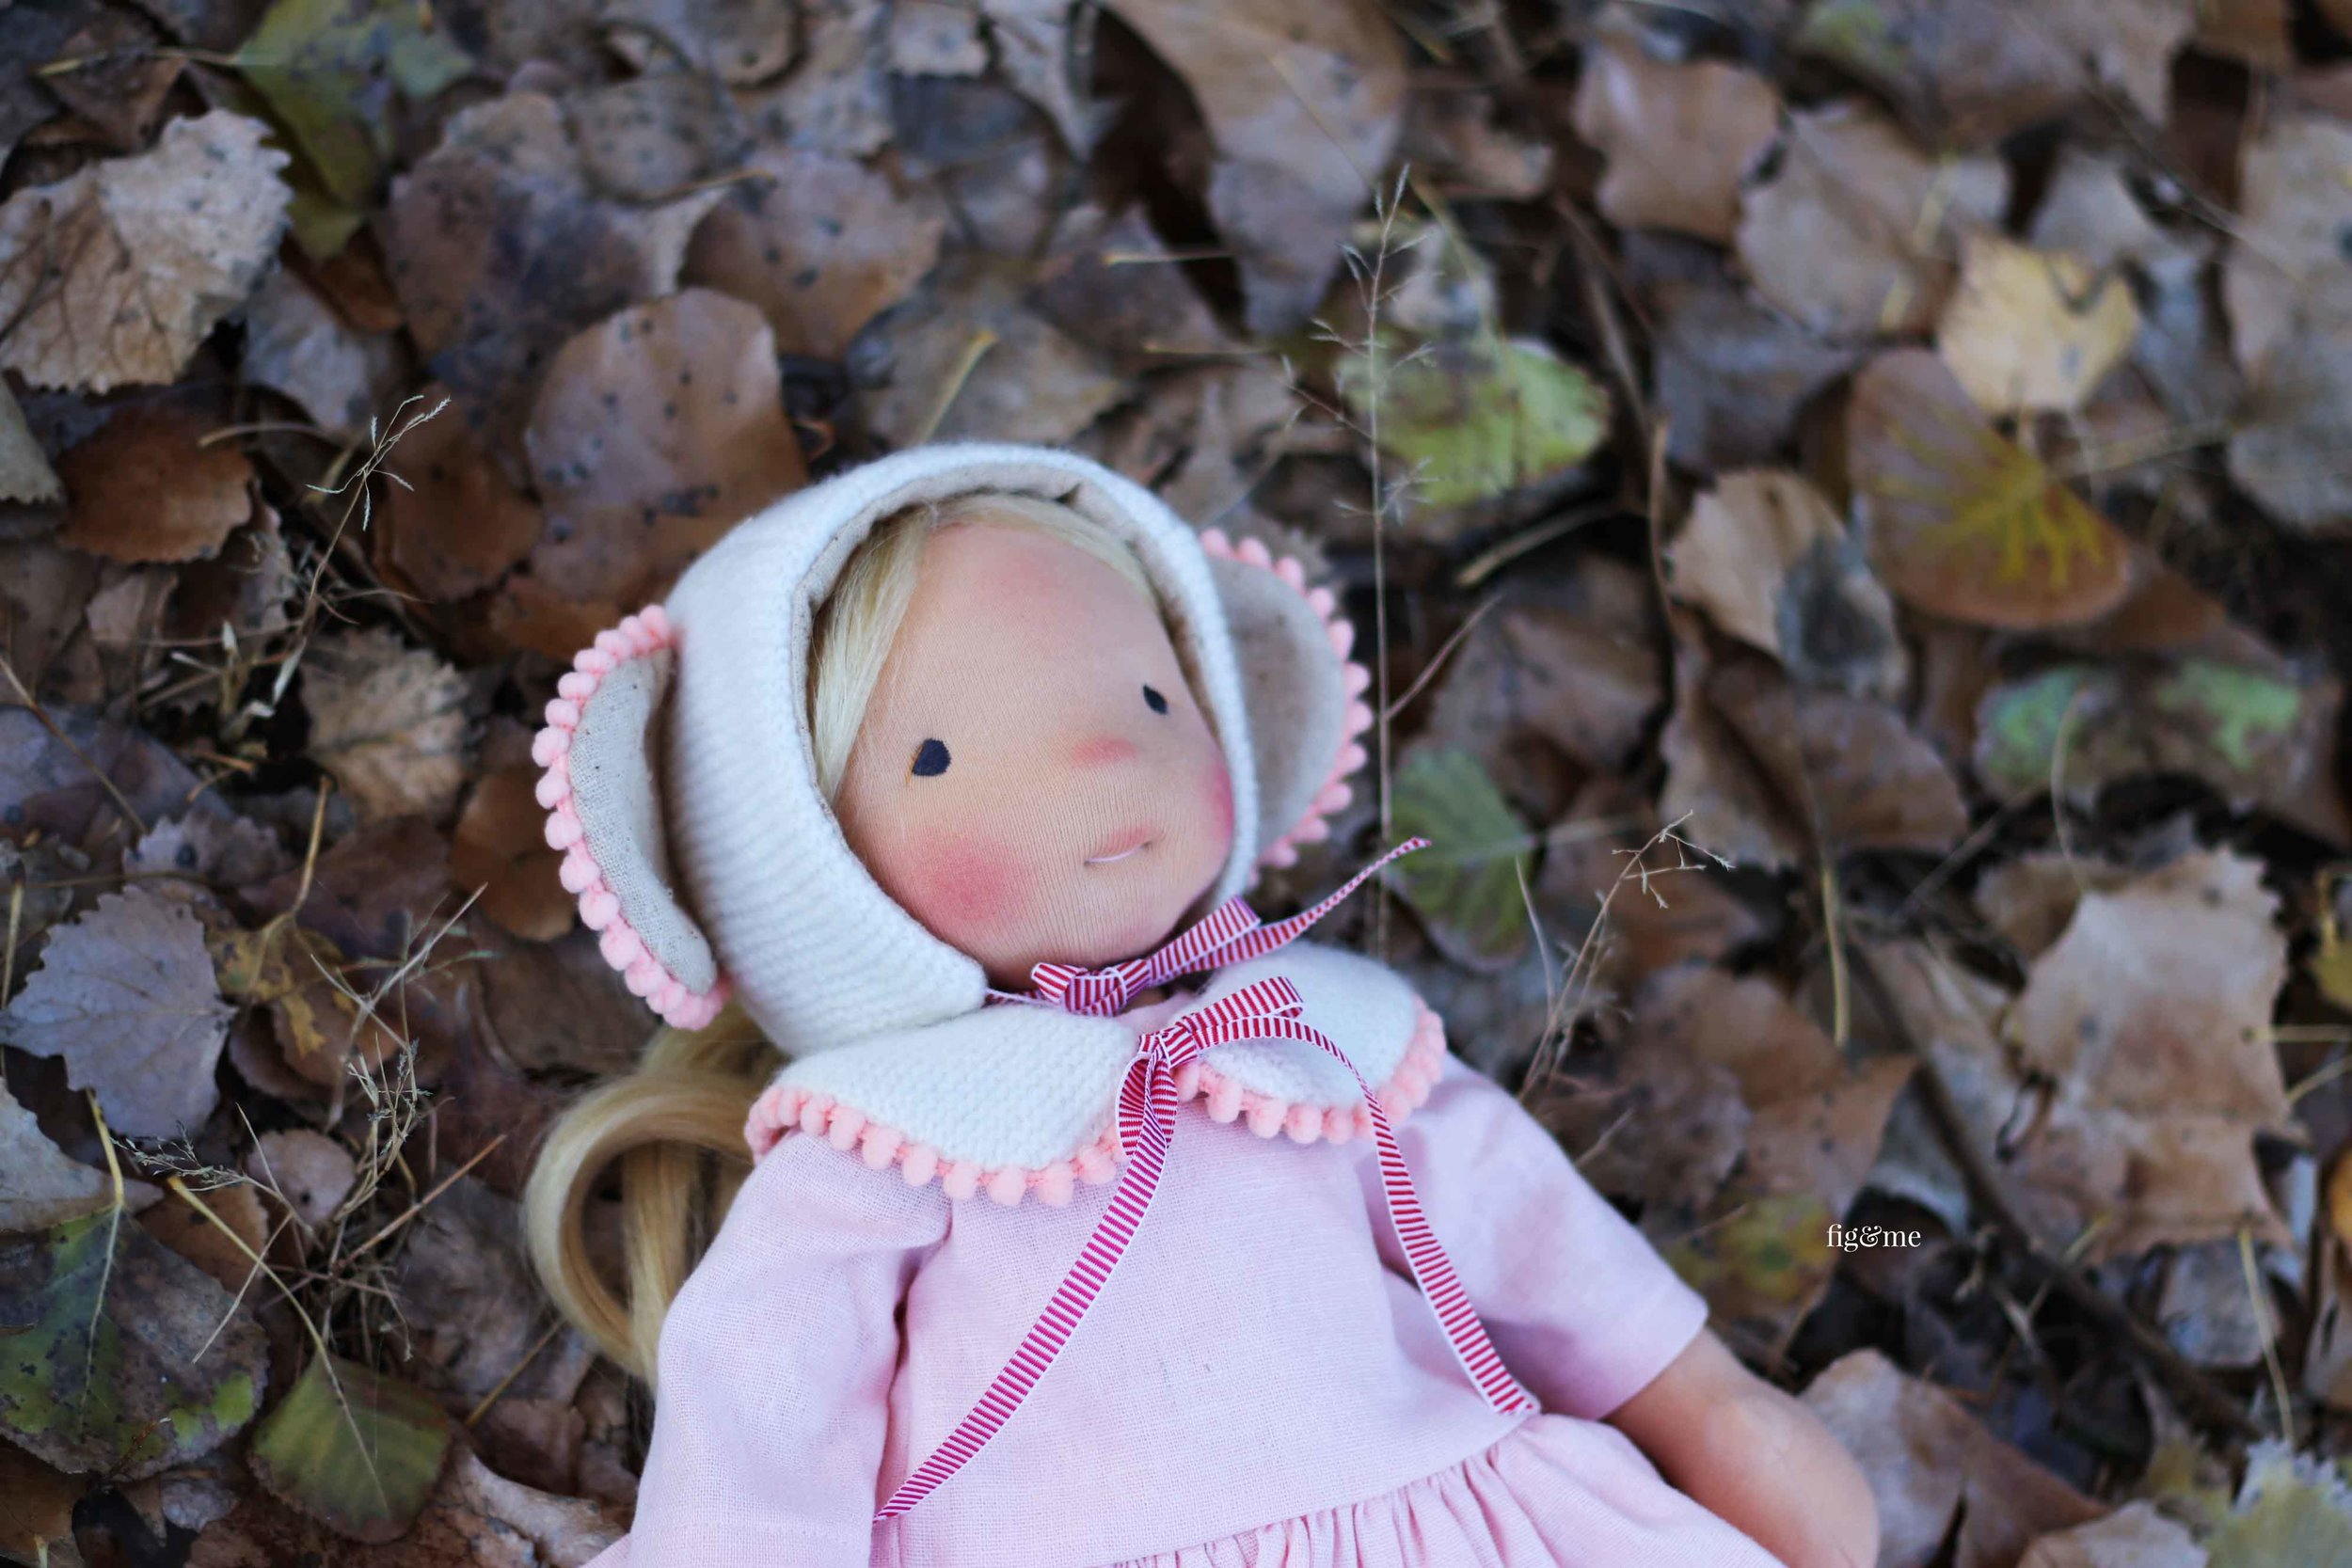 Little Amber, a natural fiber art doll by Fig and Me.